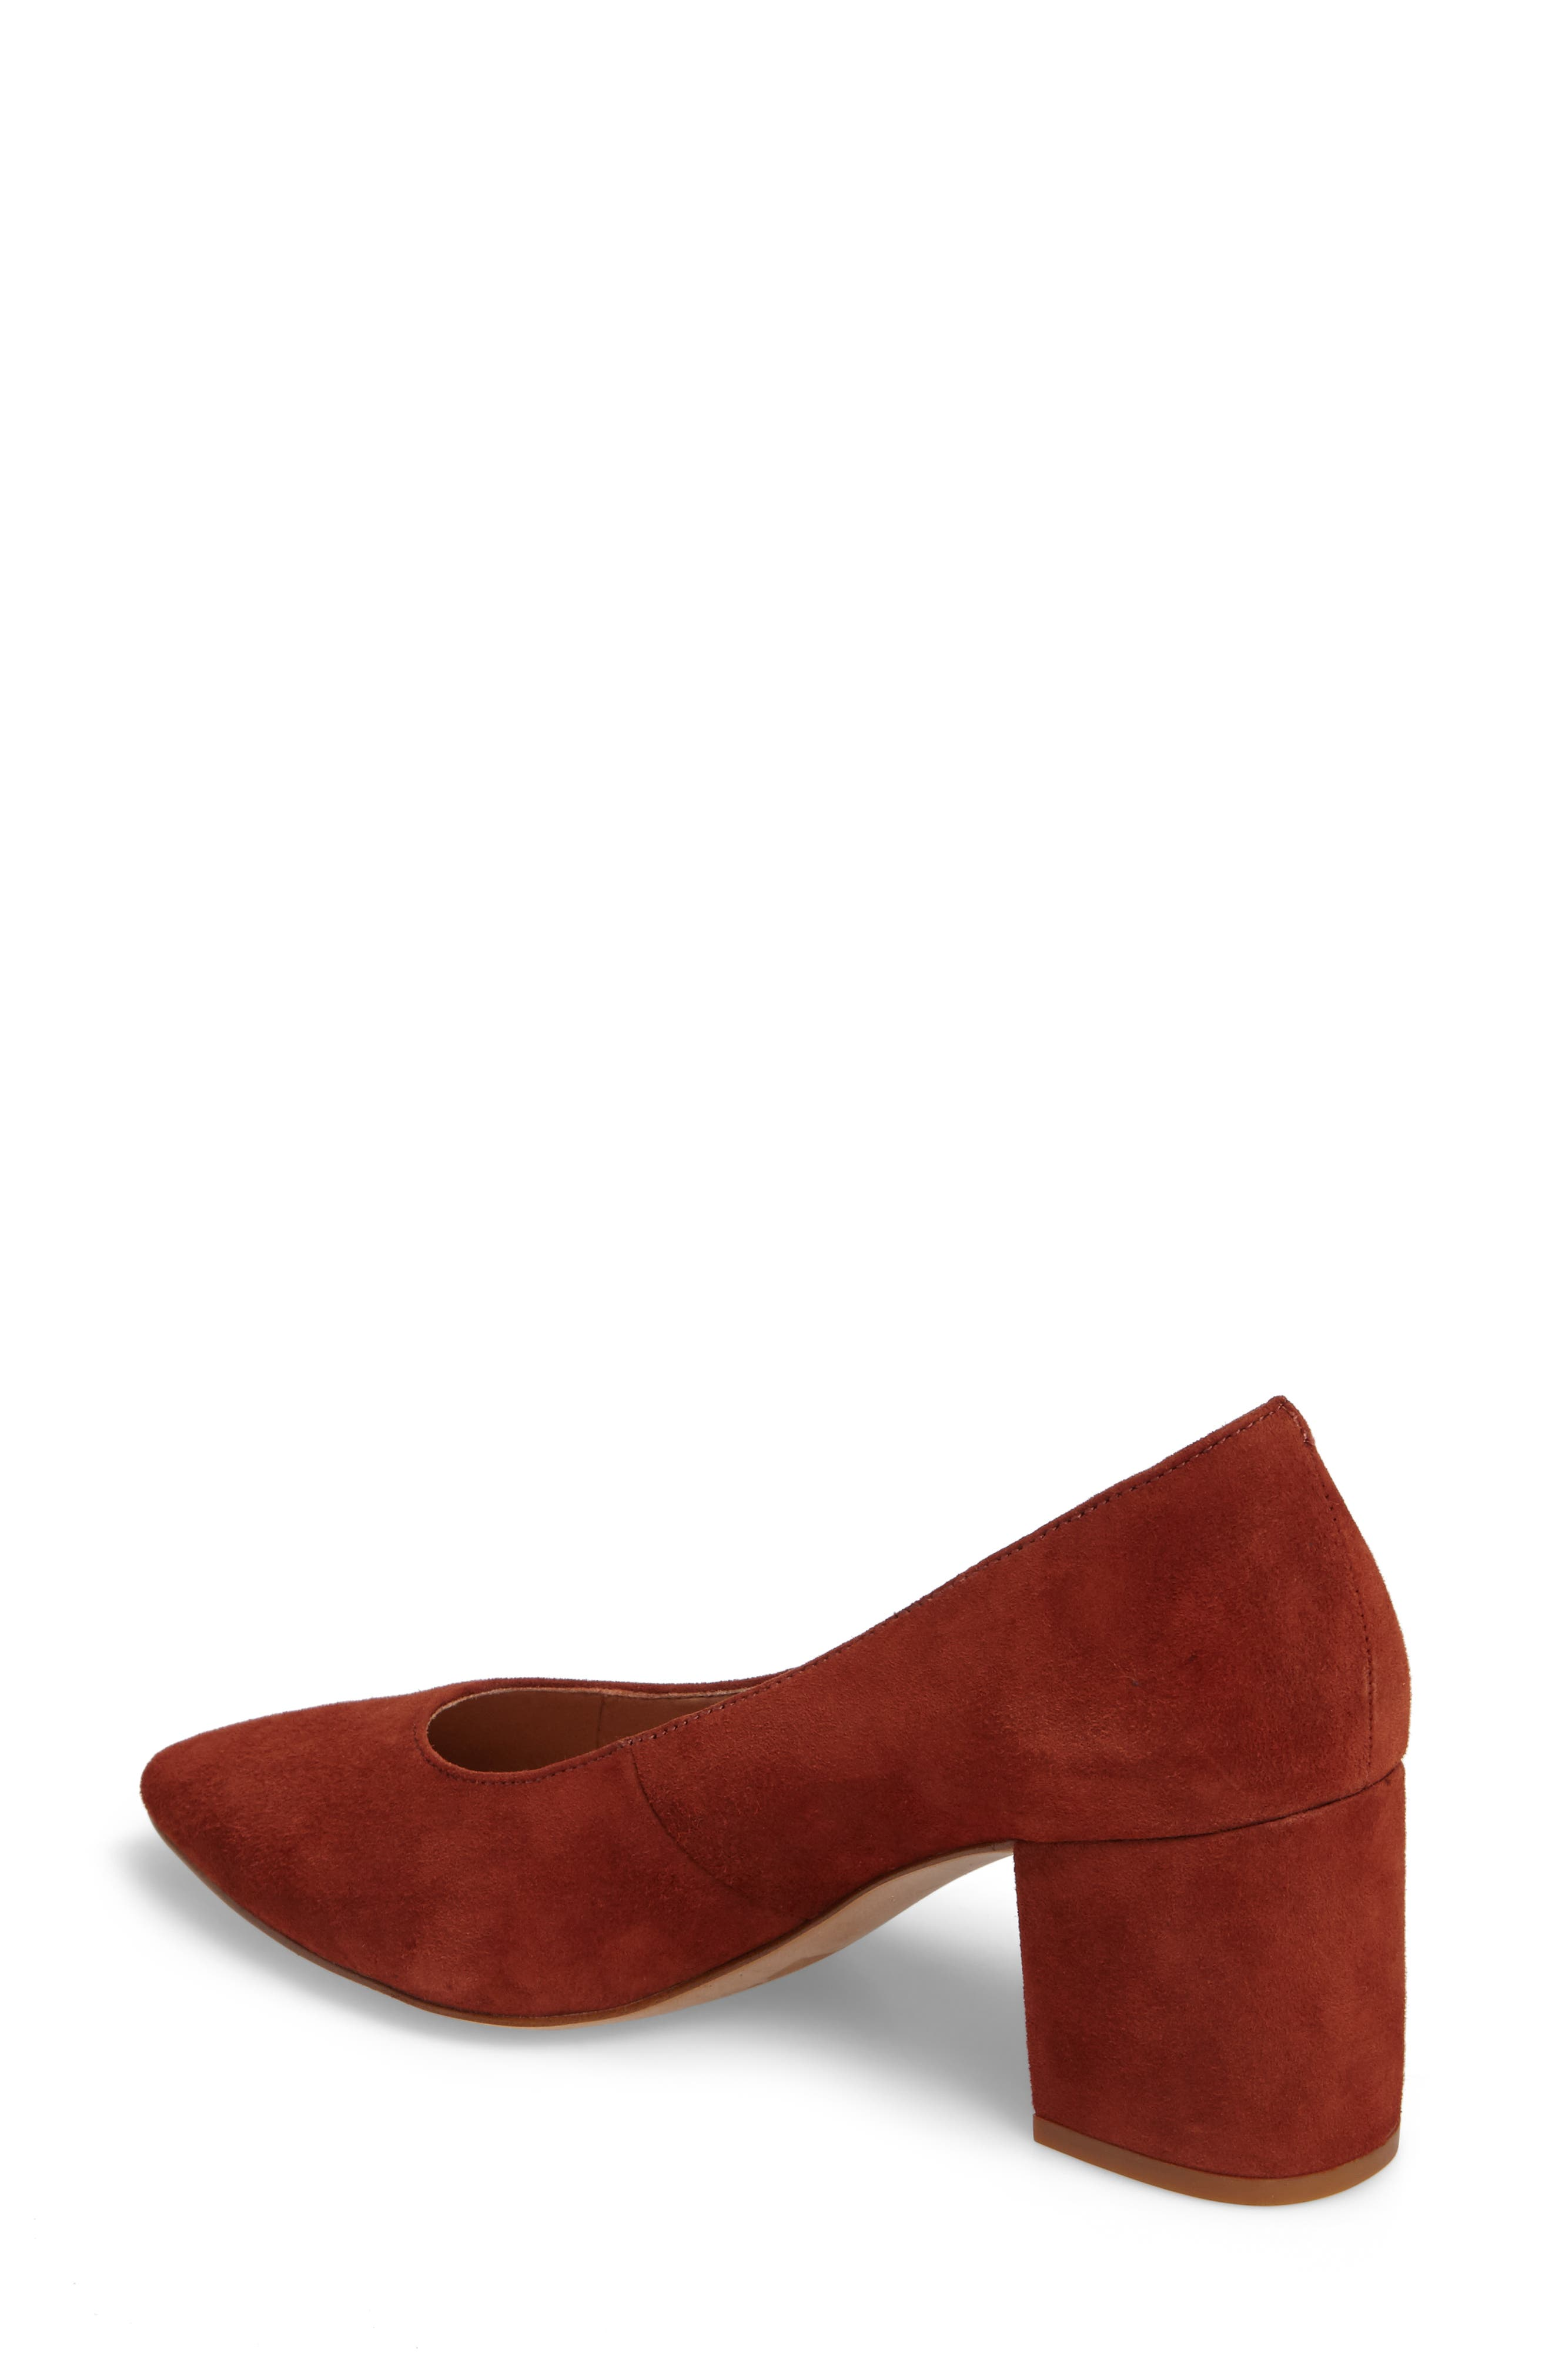 Rivka Pointy Toe Pump,                             Alternate thumbnail 2, color,                             Vintage Redwood Suede